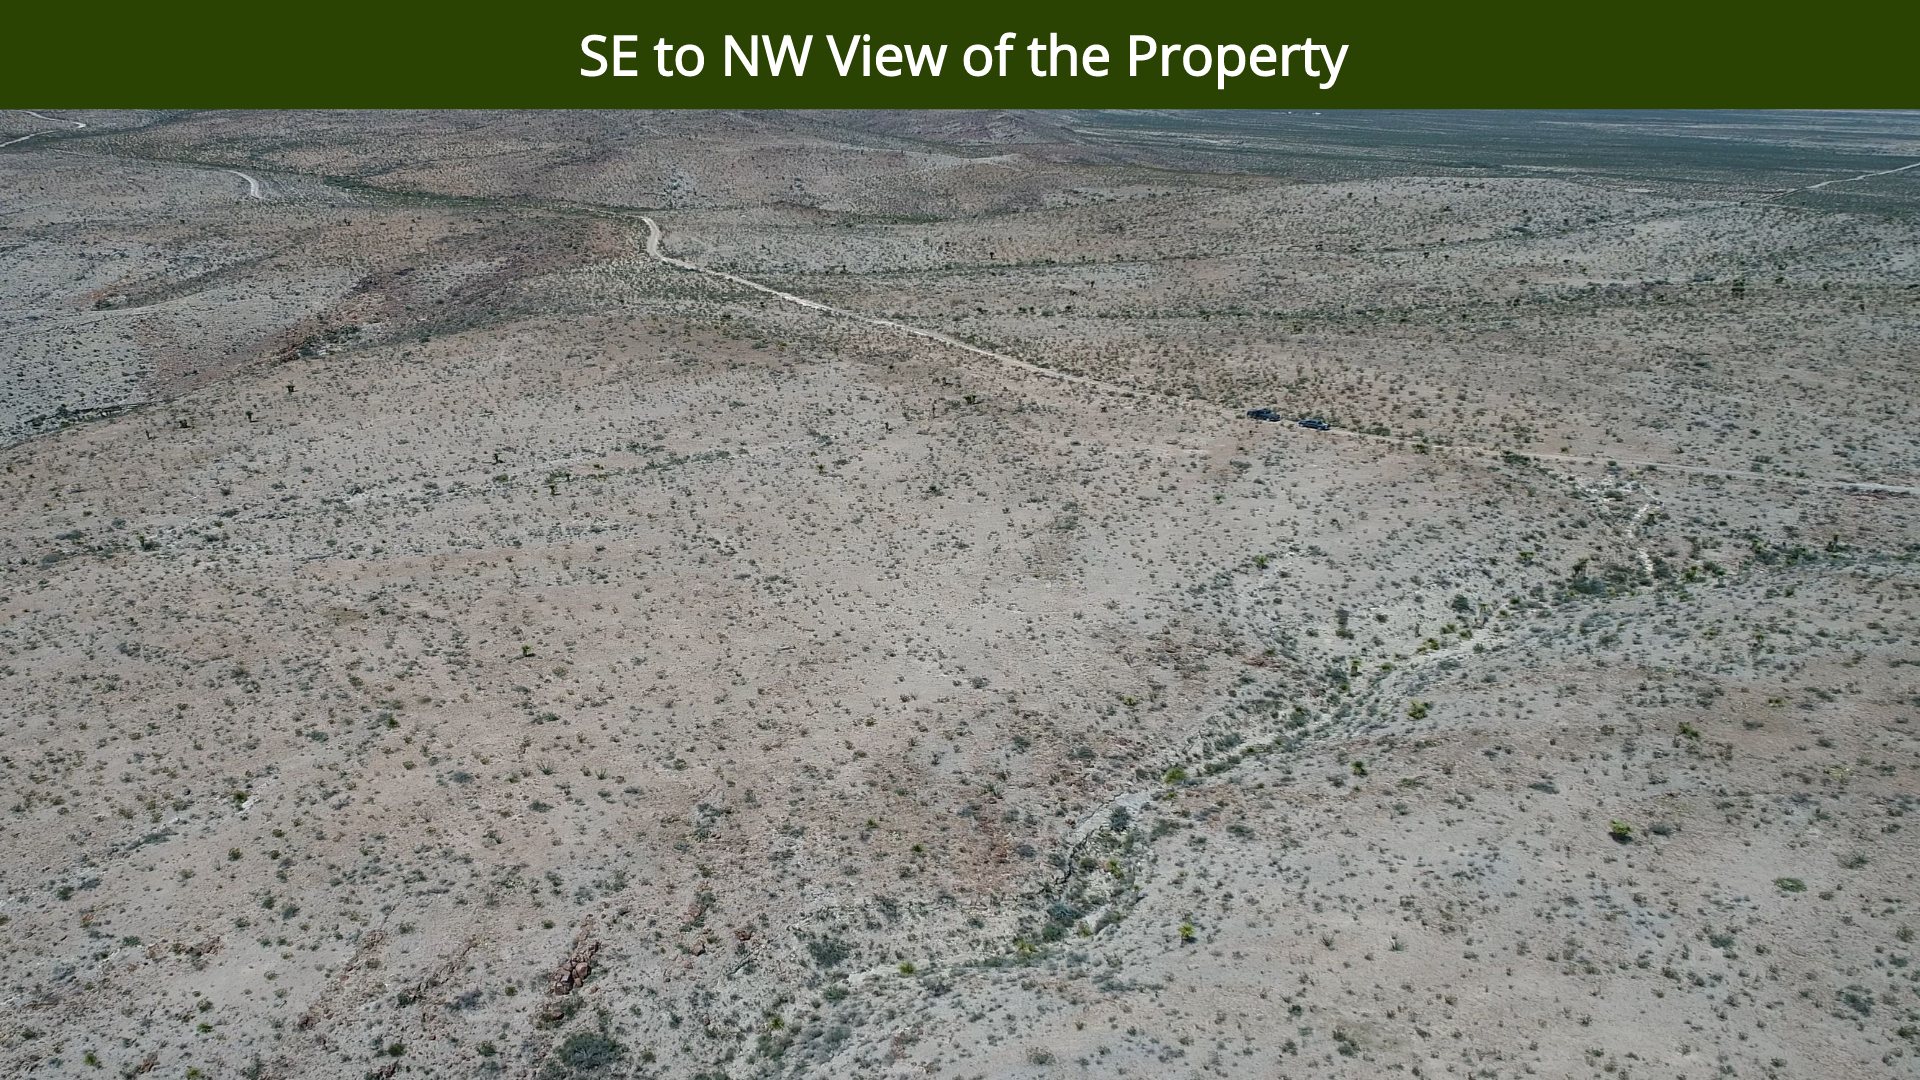 SE to NW View of the Property